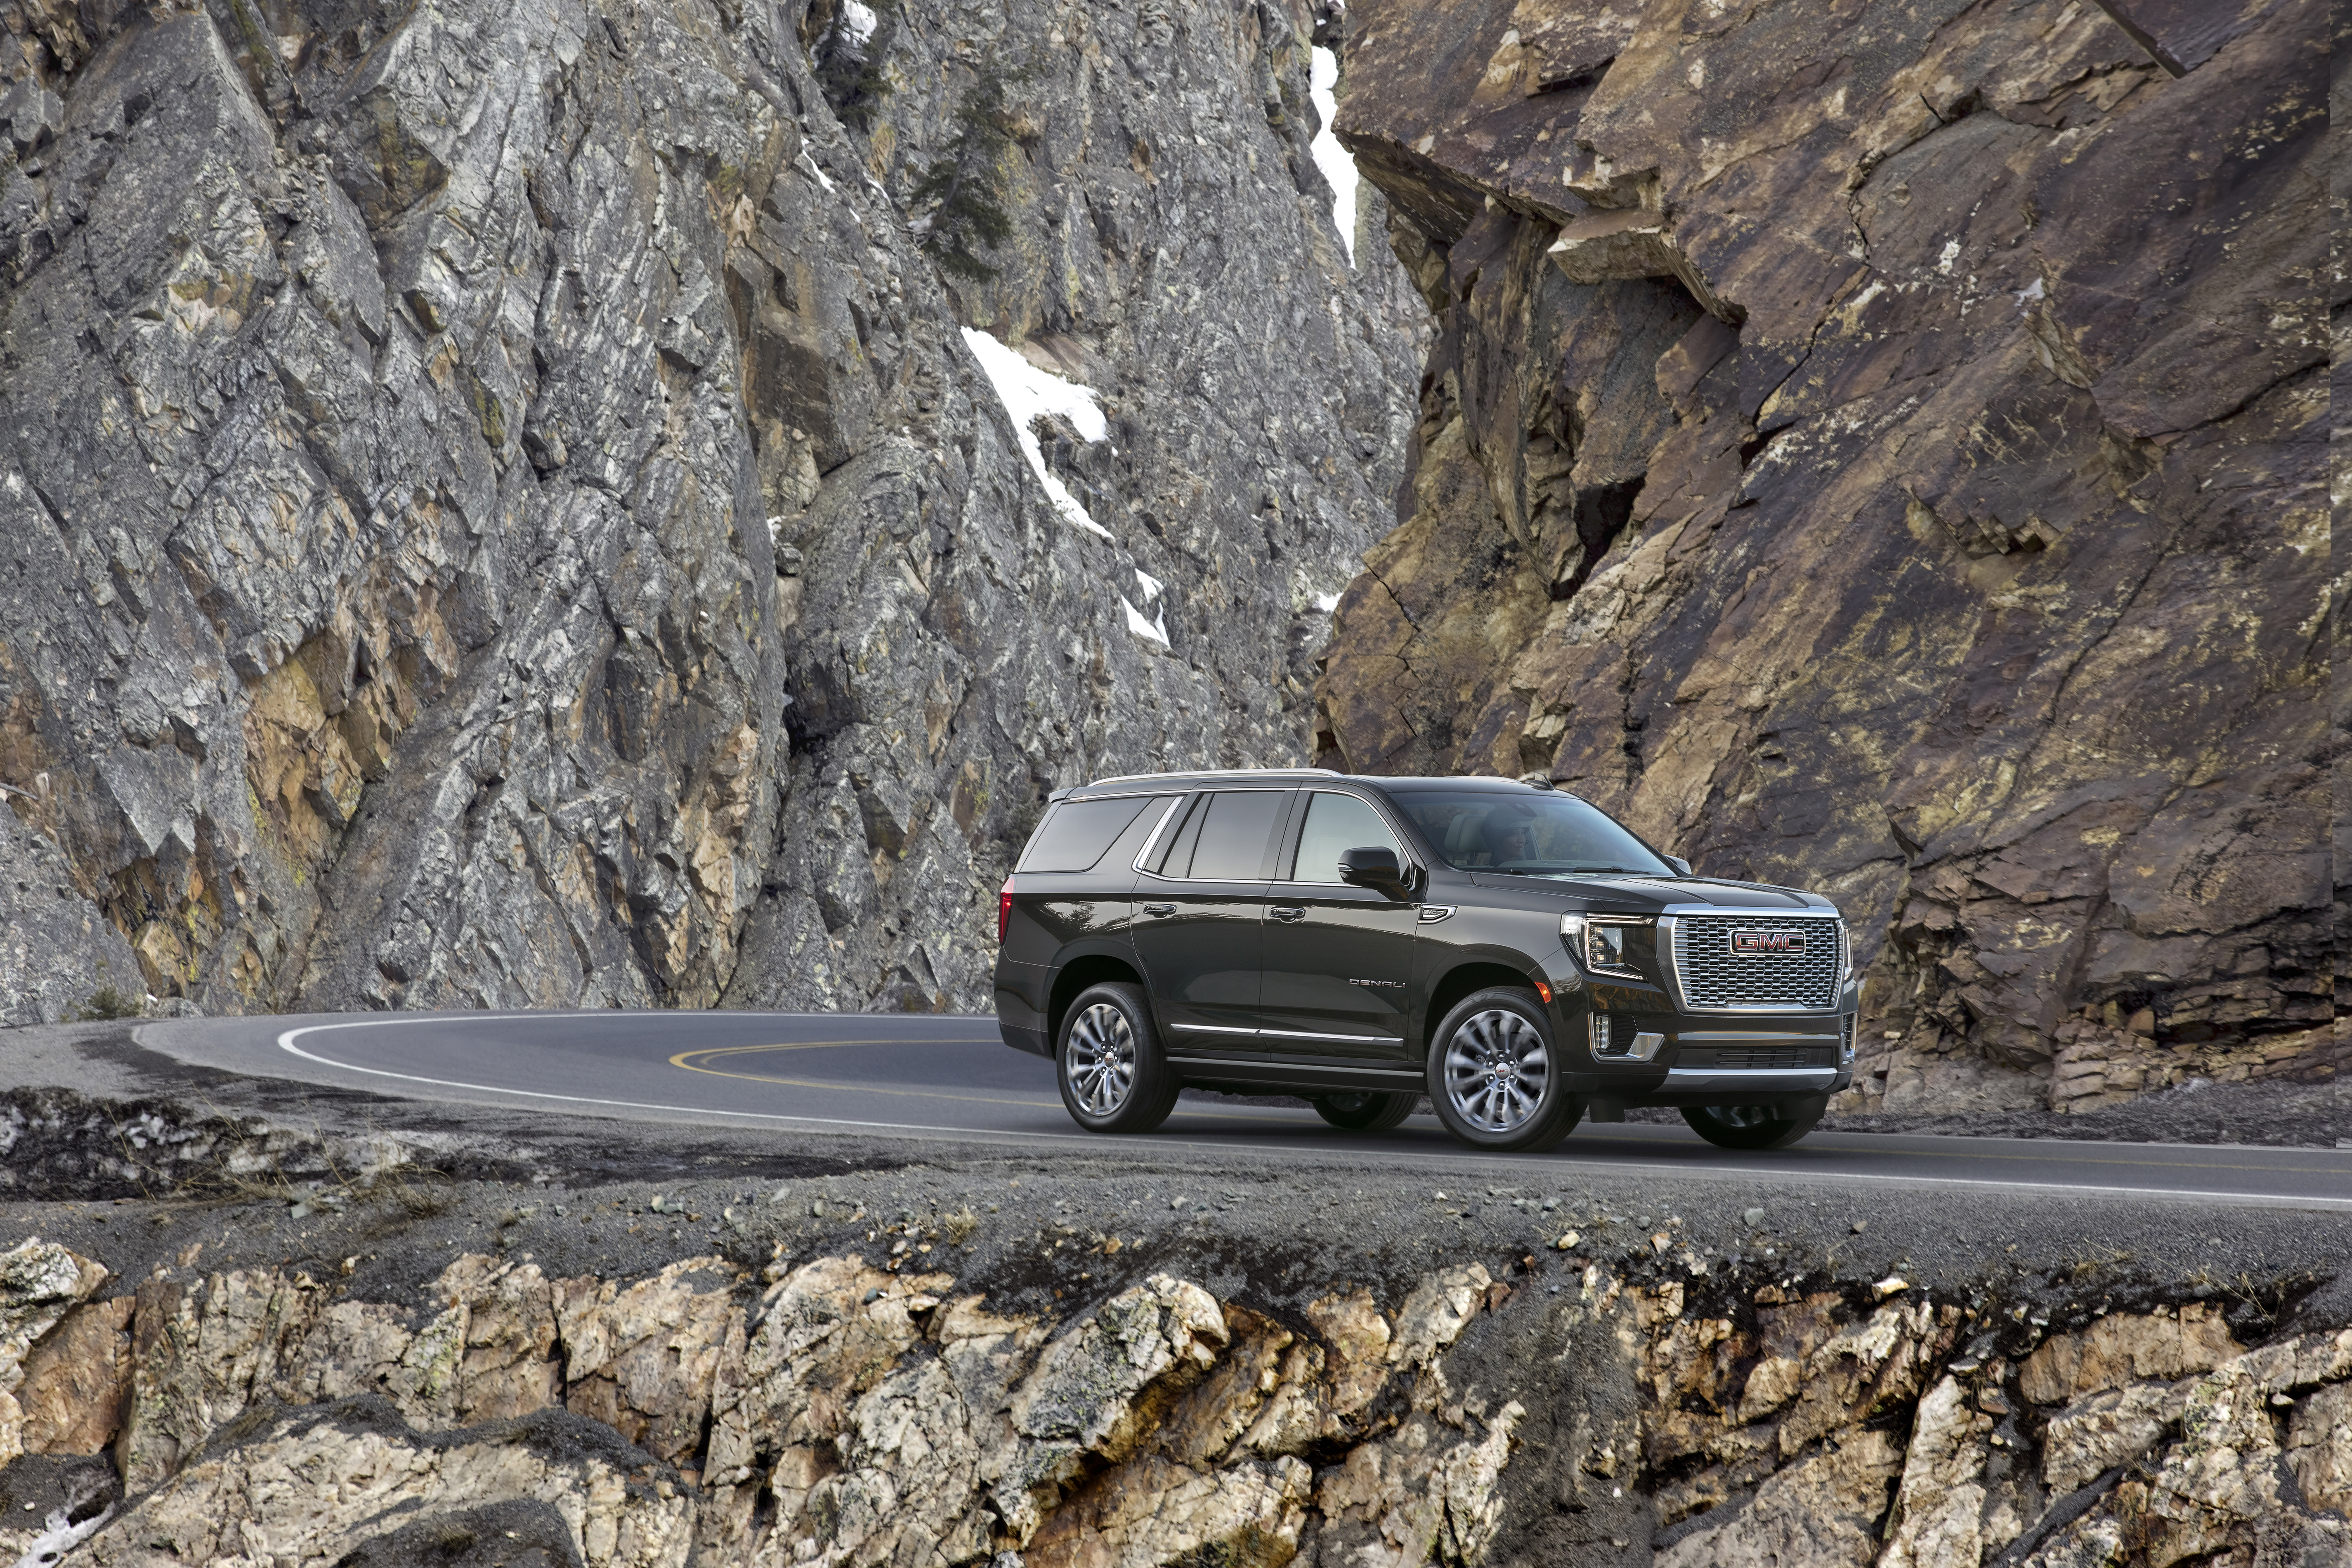 2021 gmc yukon first look at an offroadcapable luxury